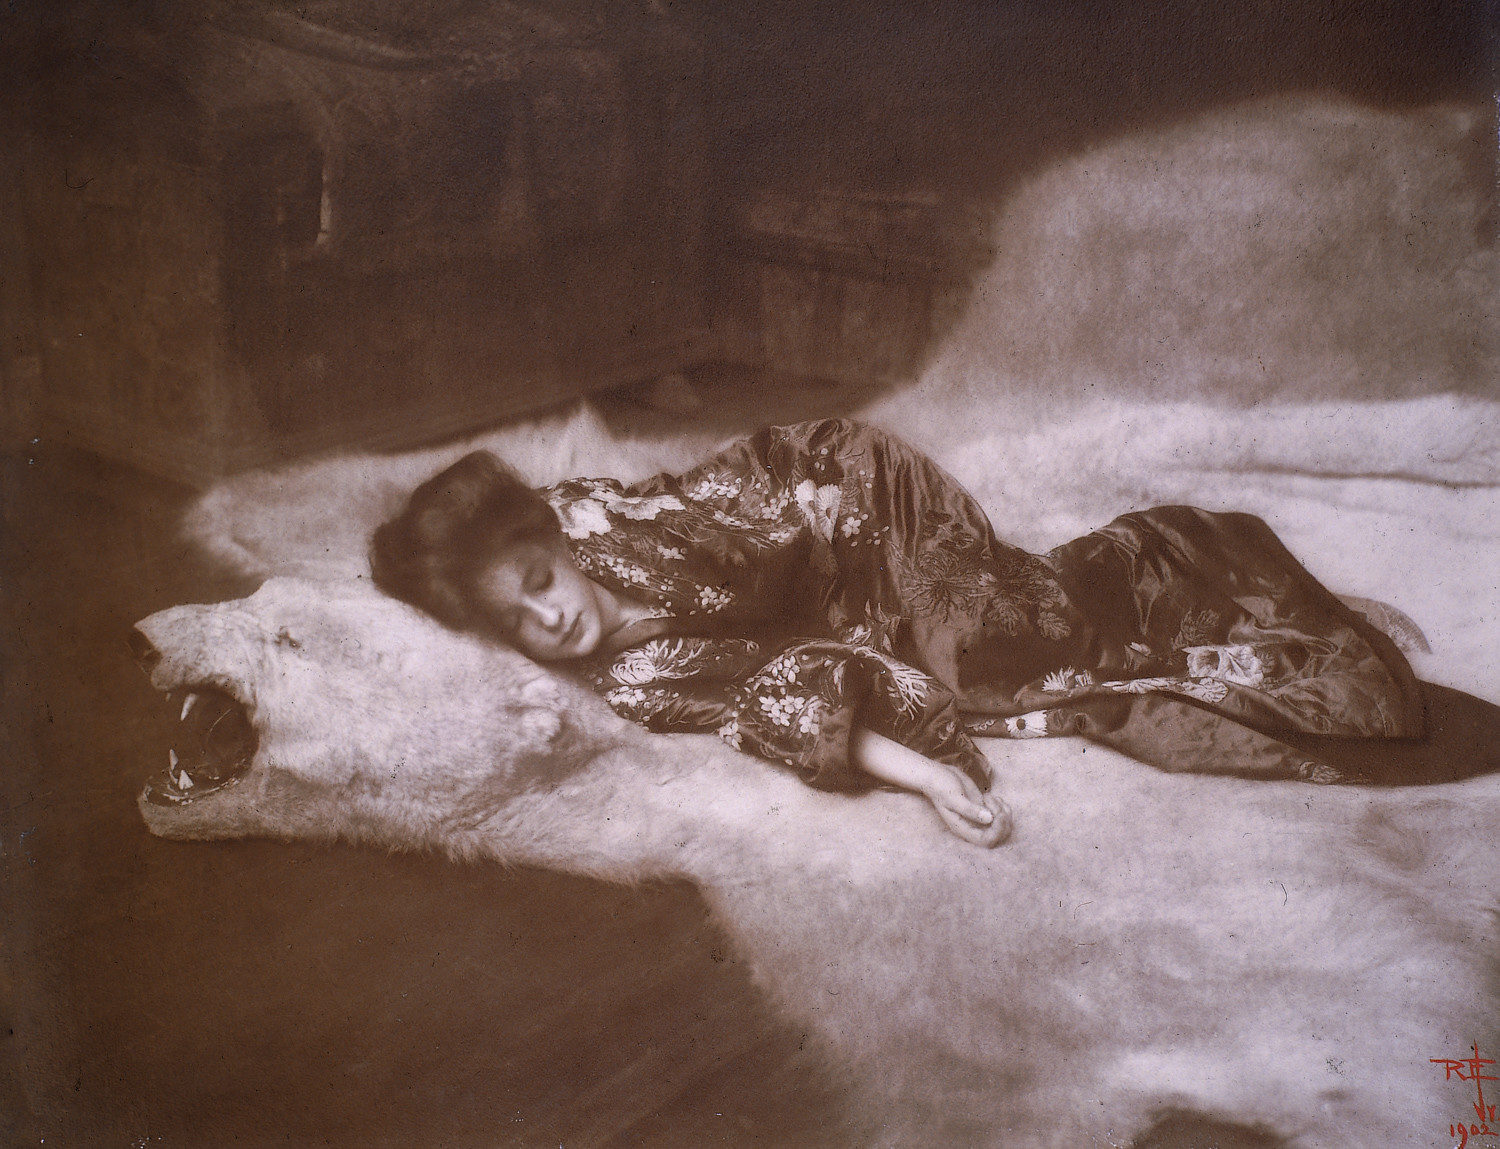 Artist Rudolf Eickemeyer Jr. was inspired by John White Alexander's 'Azalea' to create 'In My Studio,' a portrait of a woman named Evelyn Nesbit. An architect named Stanford White commissioned the piece in 1918 because he was in love with Nesbit. Now, it serves as a lesson on portraiture at the Hudson River Museum.